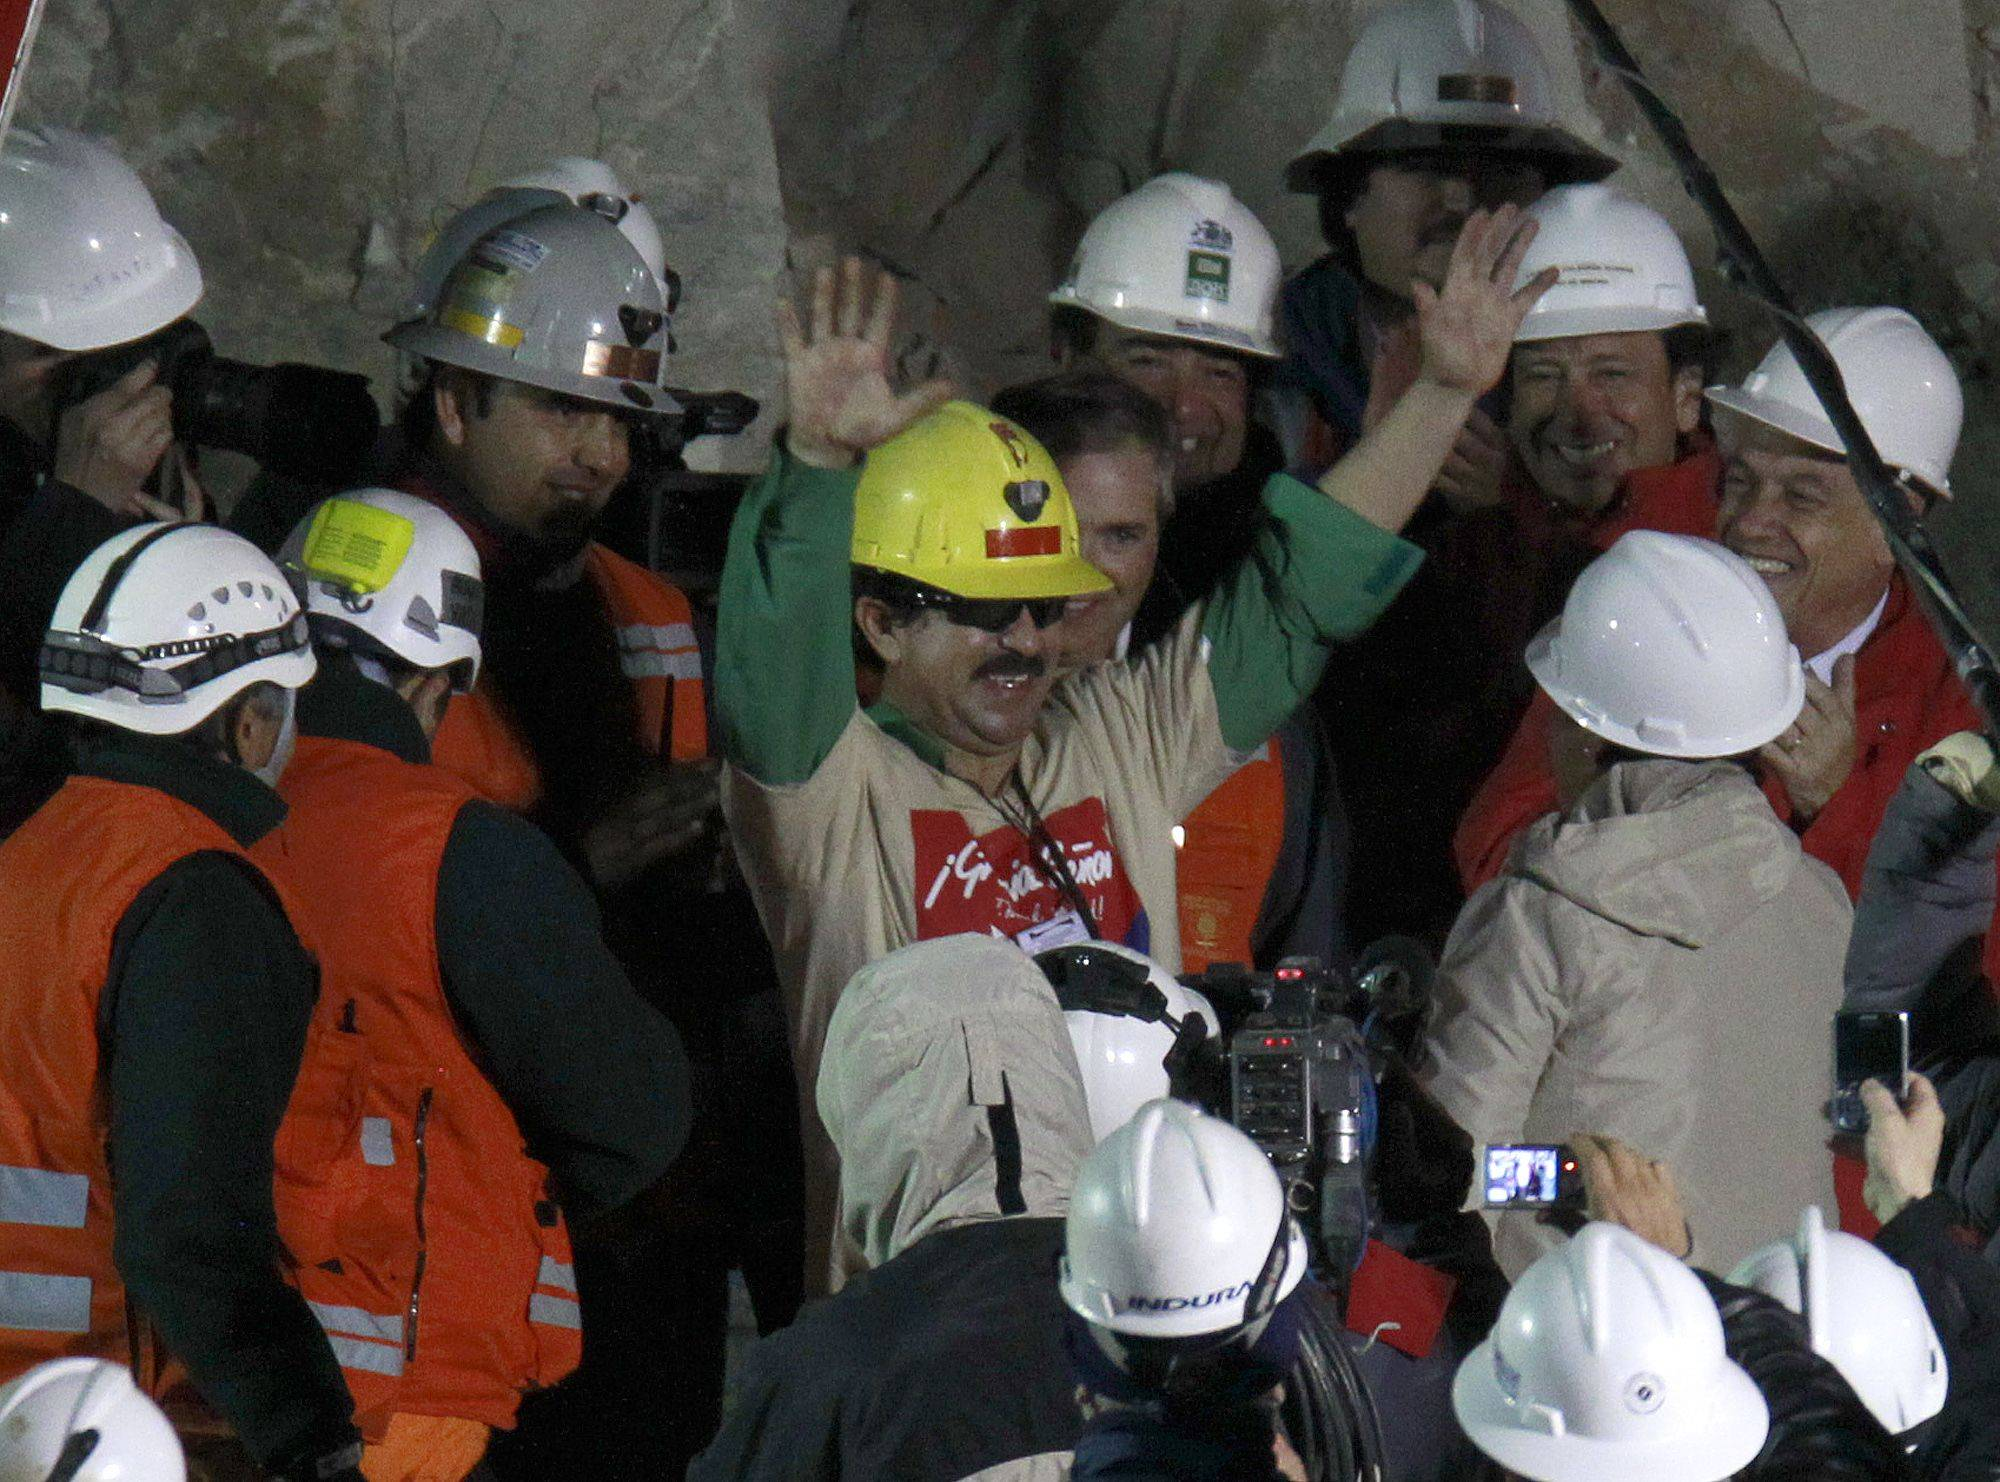 Rescued miner Juan Andres Illanes Palma, third miner to be rescued, salutes at his arrival to the surface from the collapsed San Jose gold and copper mine where he was trapped with 32 other miners for over two months near Copiapo, Chile, Wednesday Oct. 13, 2010.at the San Jose Mine near Copiapo, Chile Wednesday, Oct. 13, 2010.